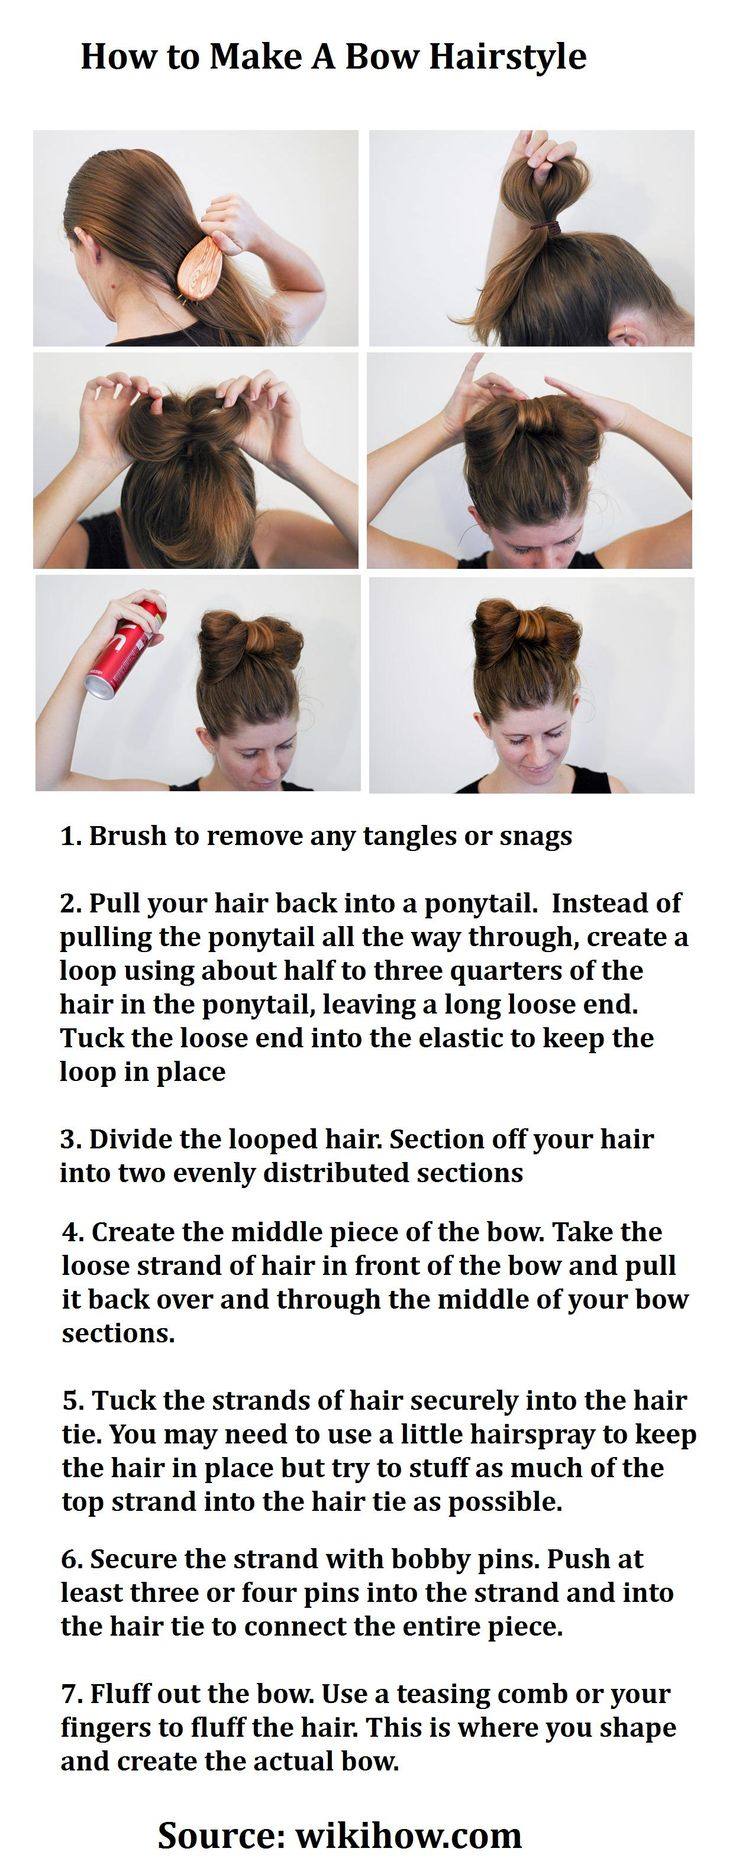 hugh jackman hairstyle : How to Make A Bow Hairstyle Hairstyles Pinterest